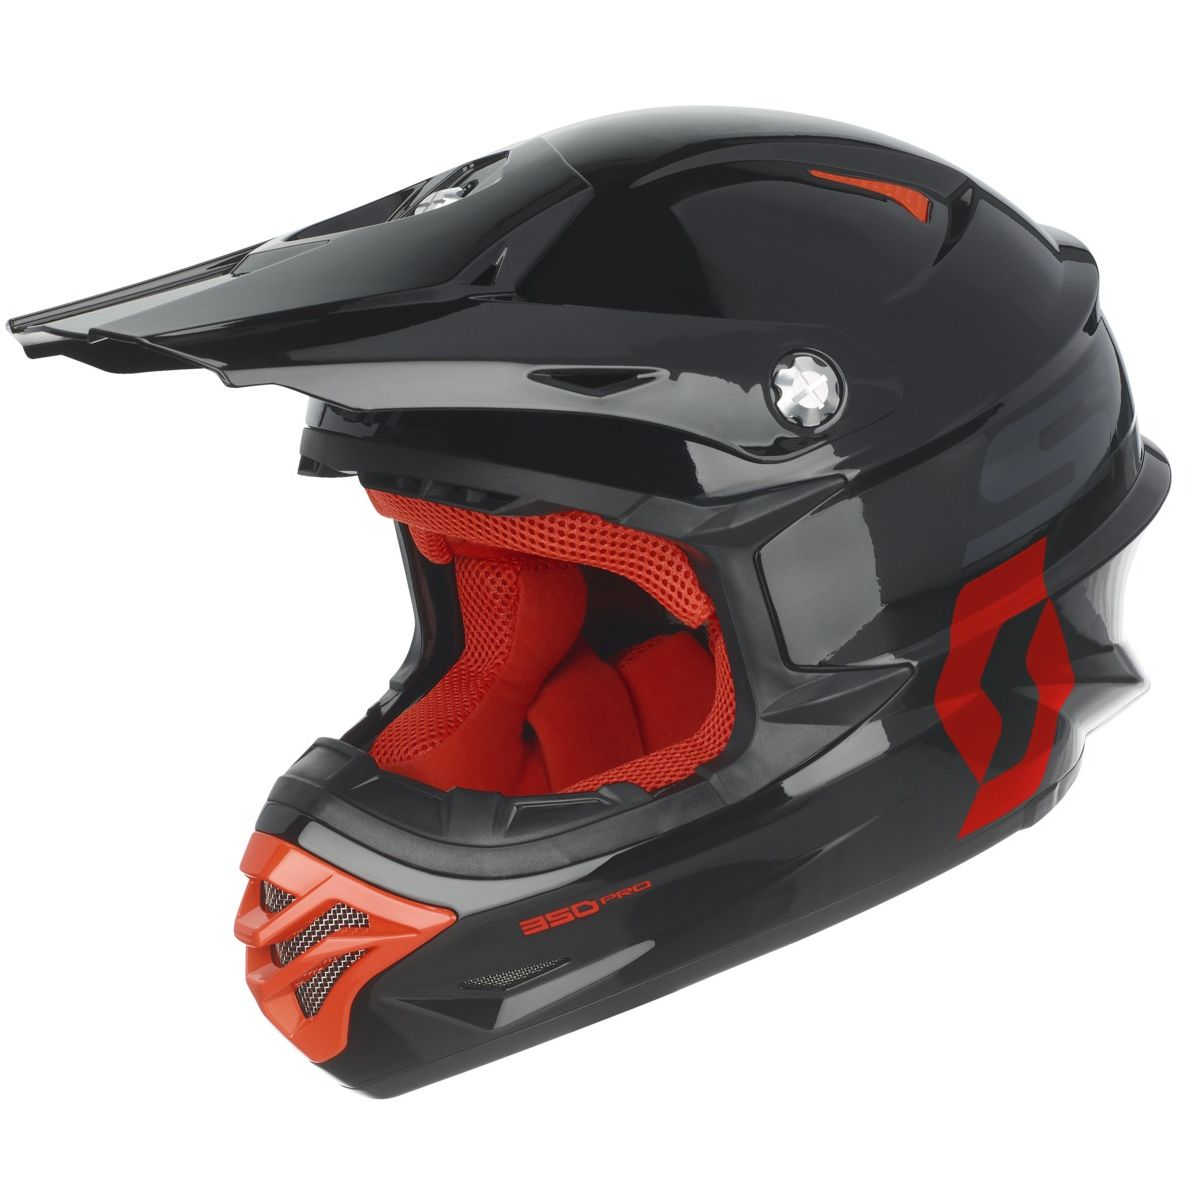 Casque cross Scott destockage 350 PRO BLACK ORANGE 2017